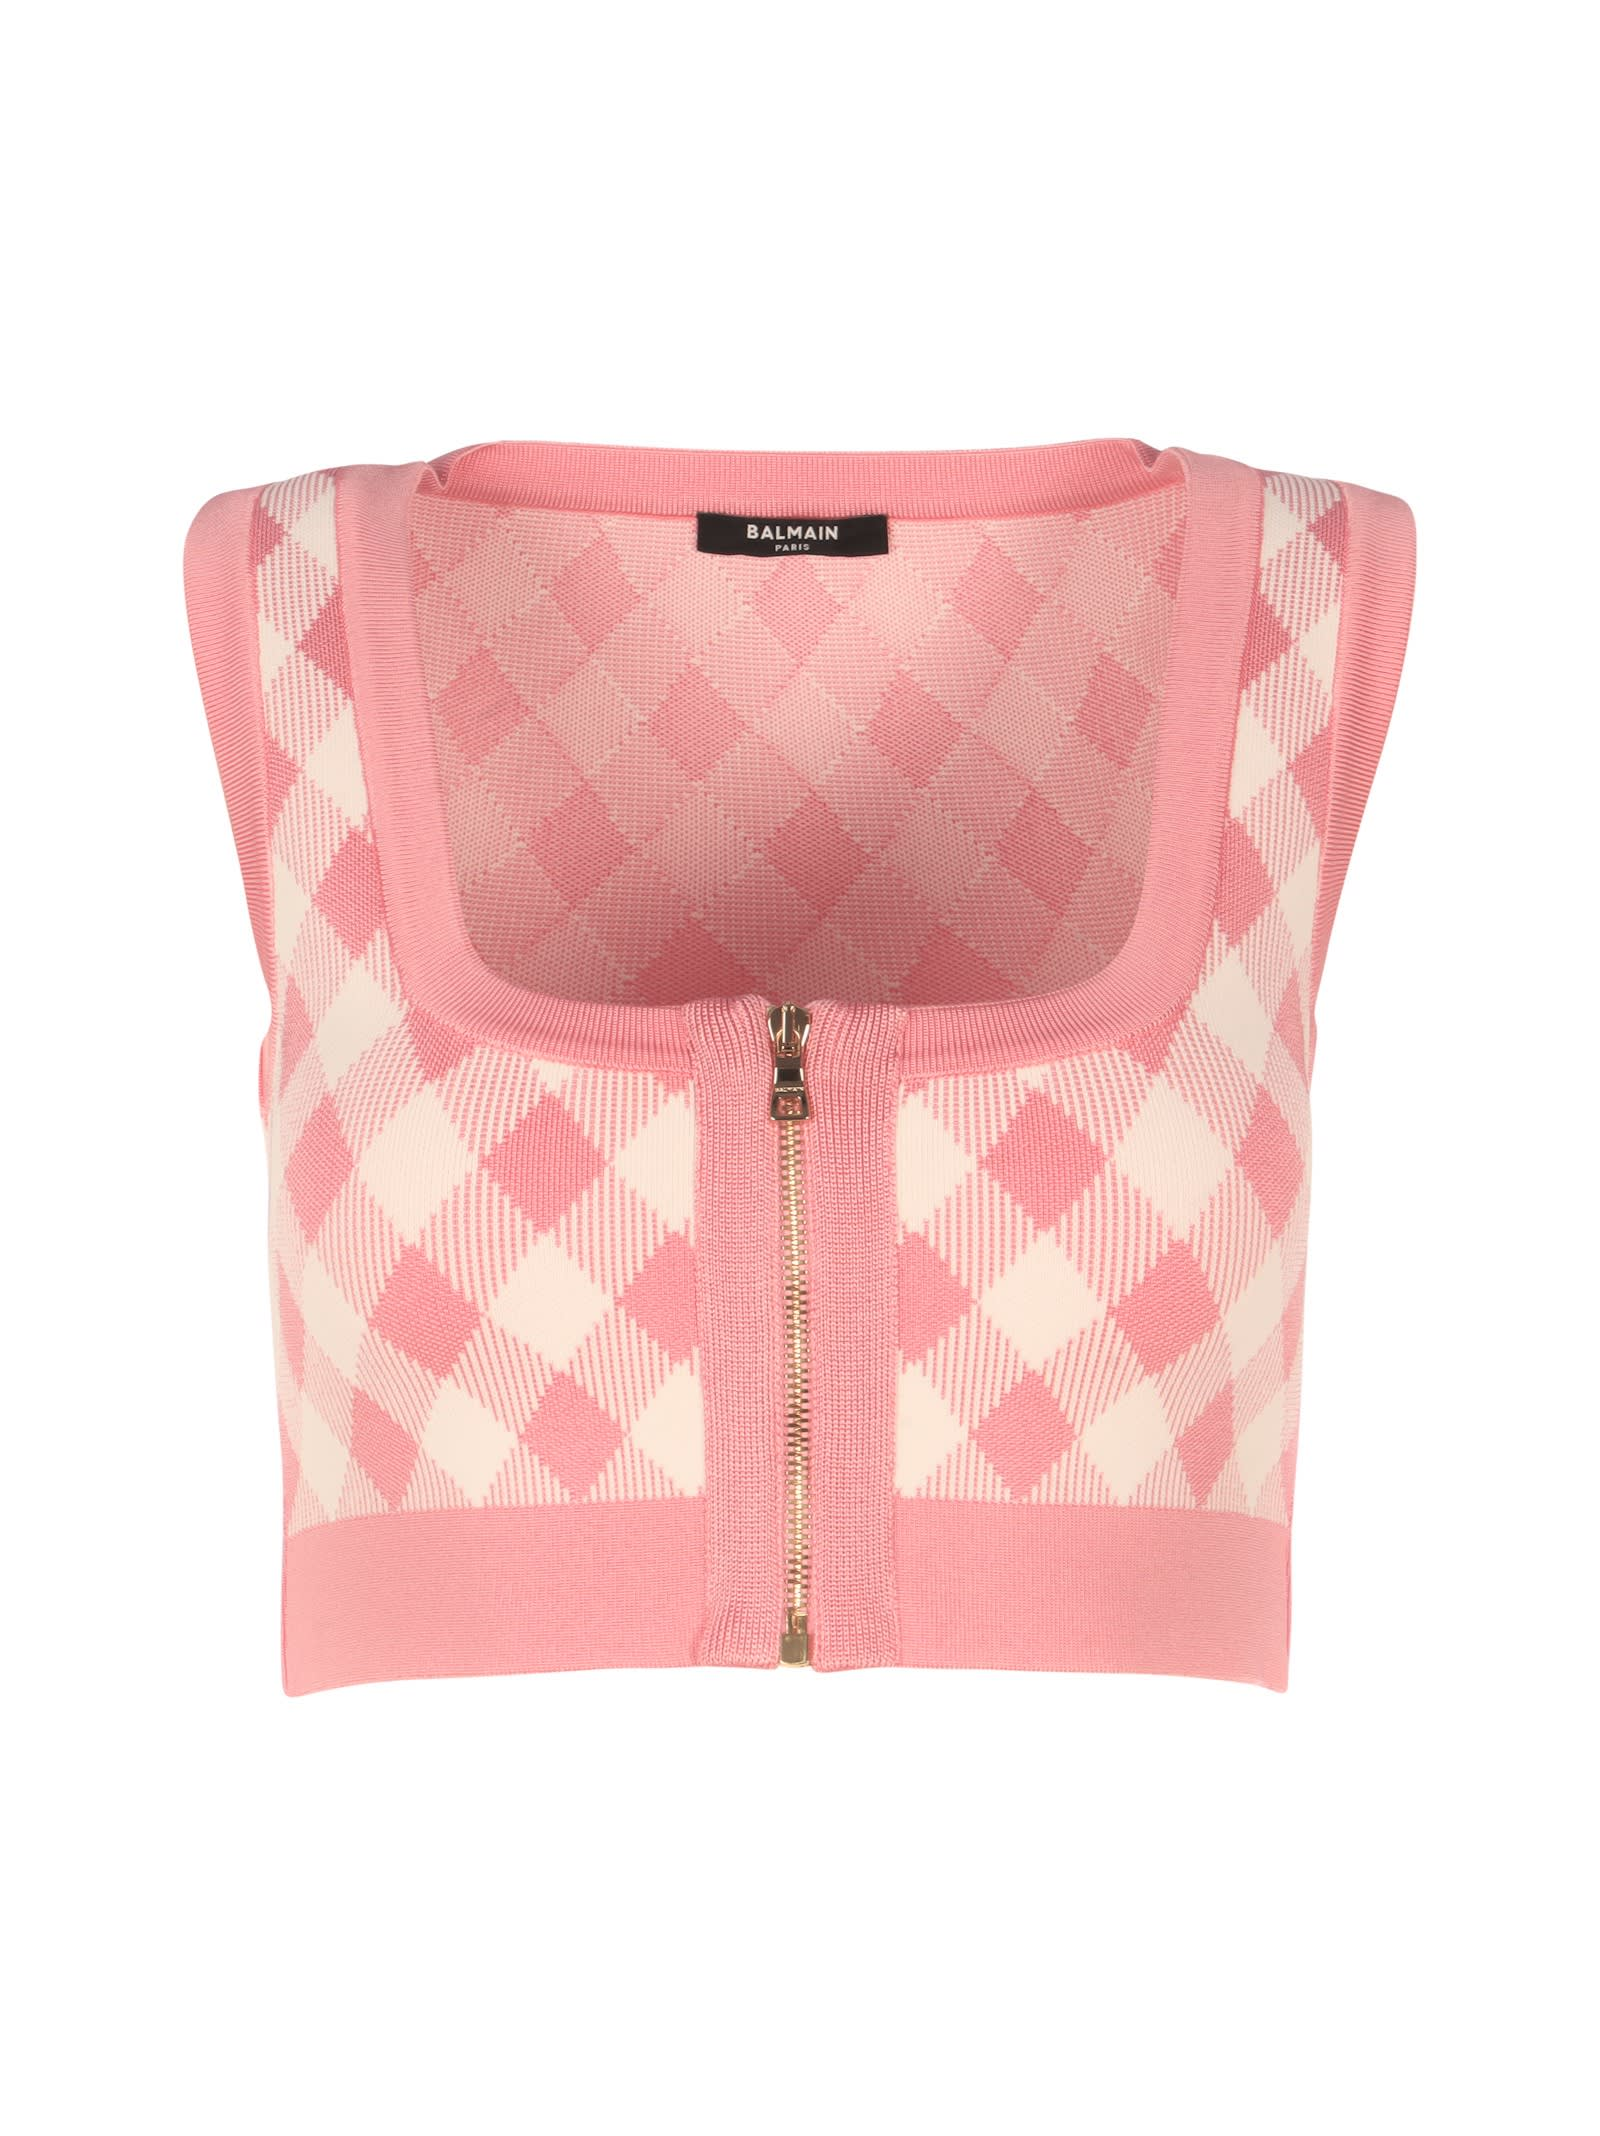 Balmain Cropped Zipped Gingham Jacquard Top